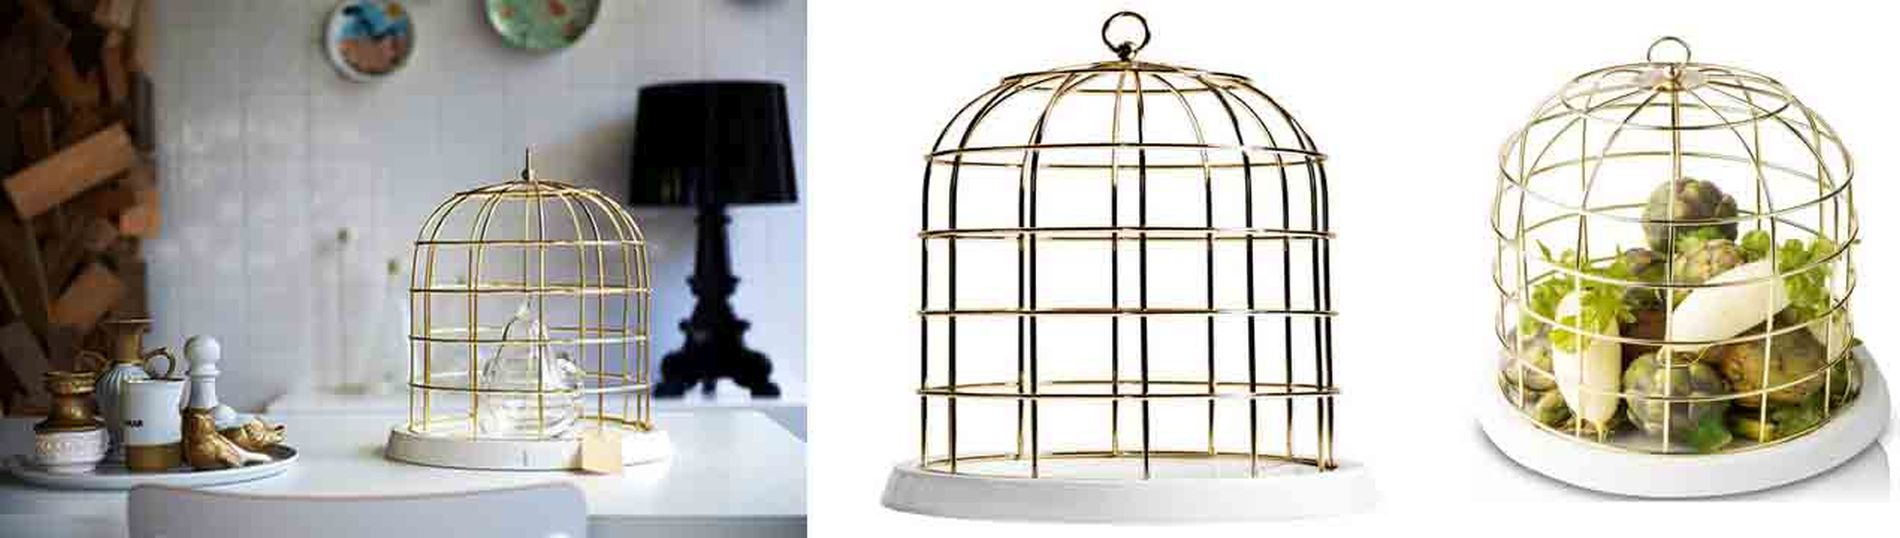 Birdcage By Selletti